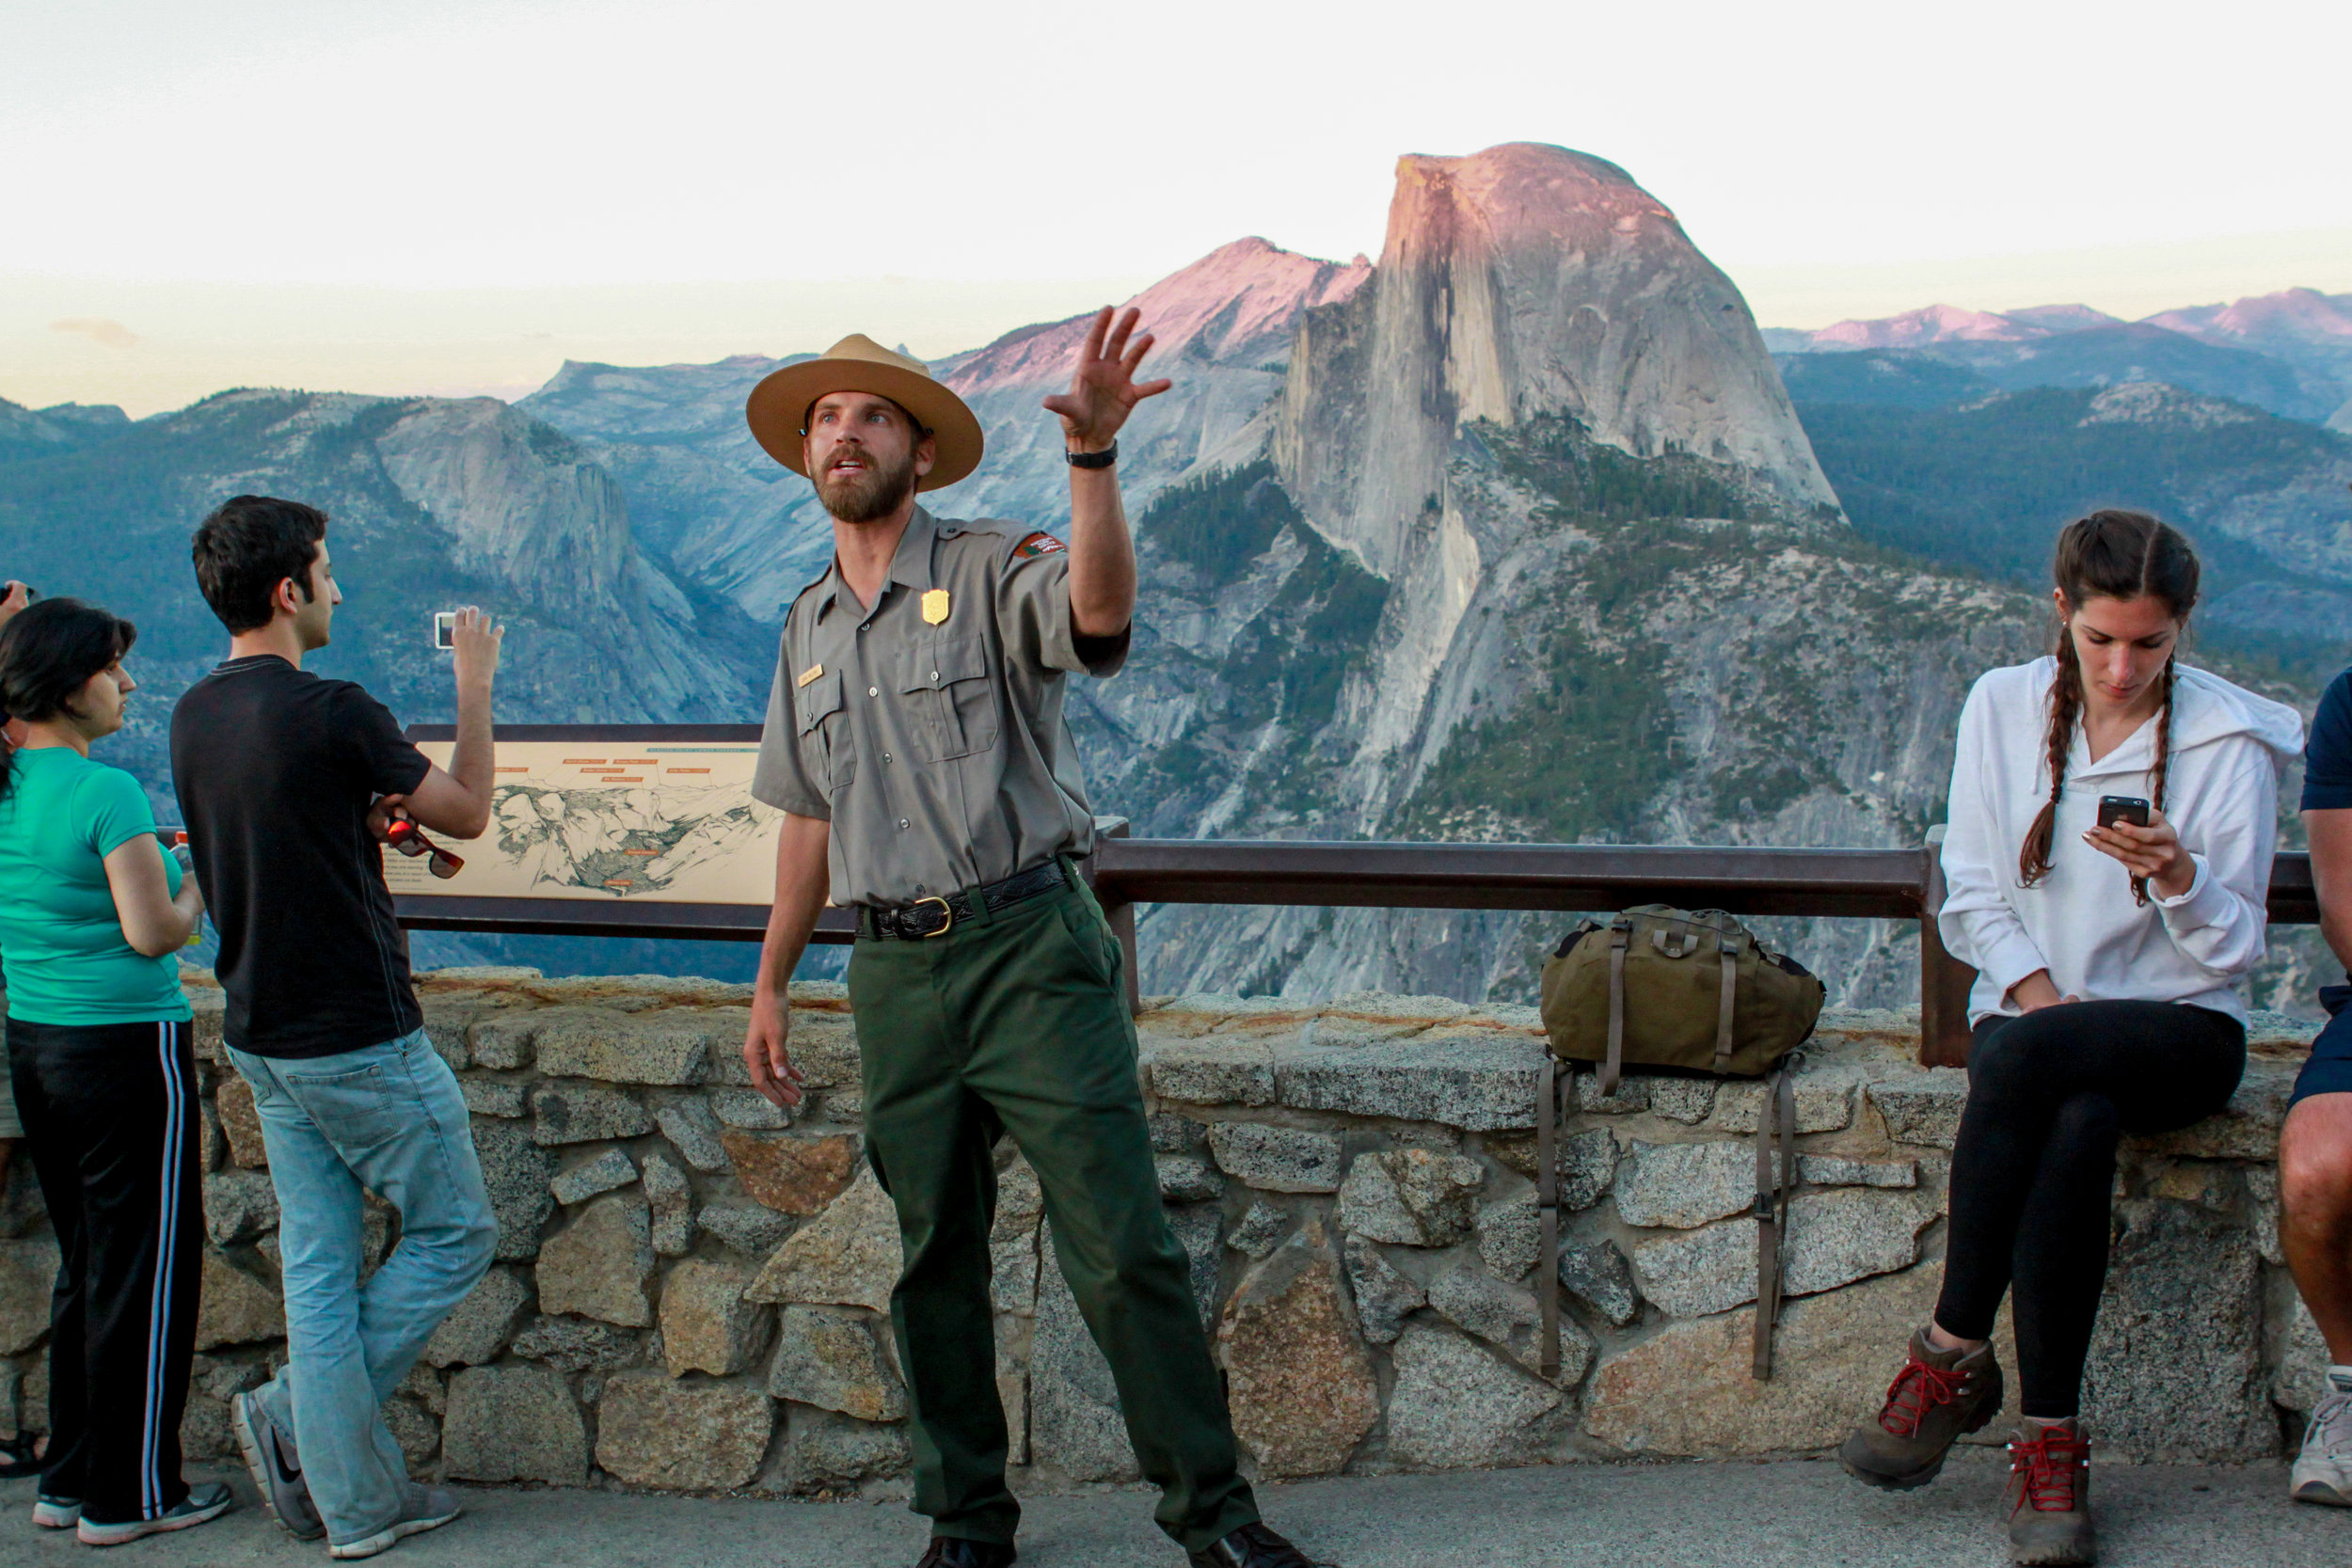 A Ranger Giving a Talk on Yosemite Geography at Glacier Point, 2012